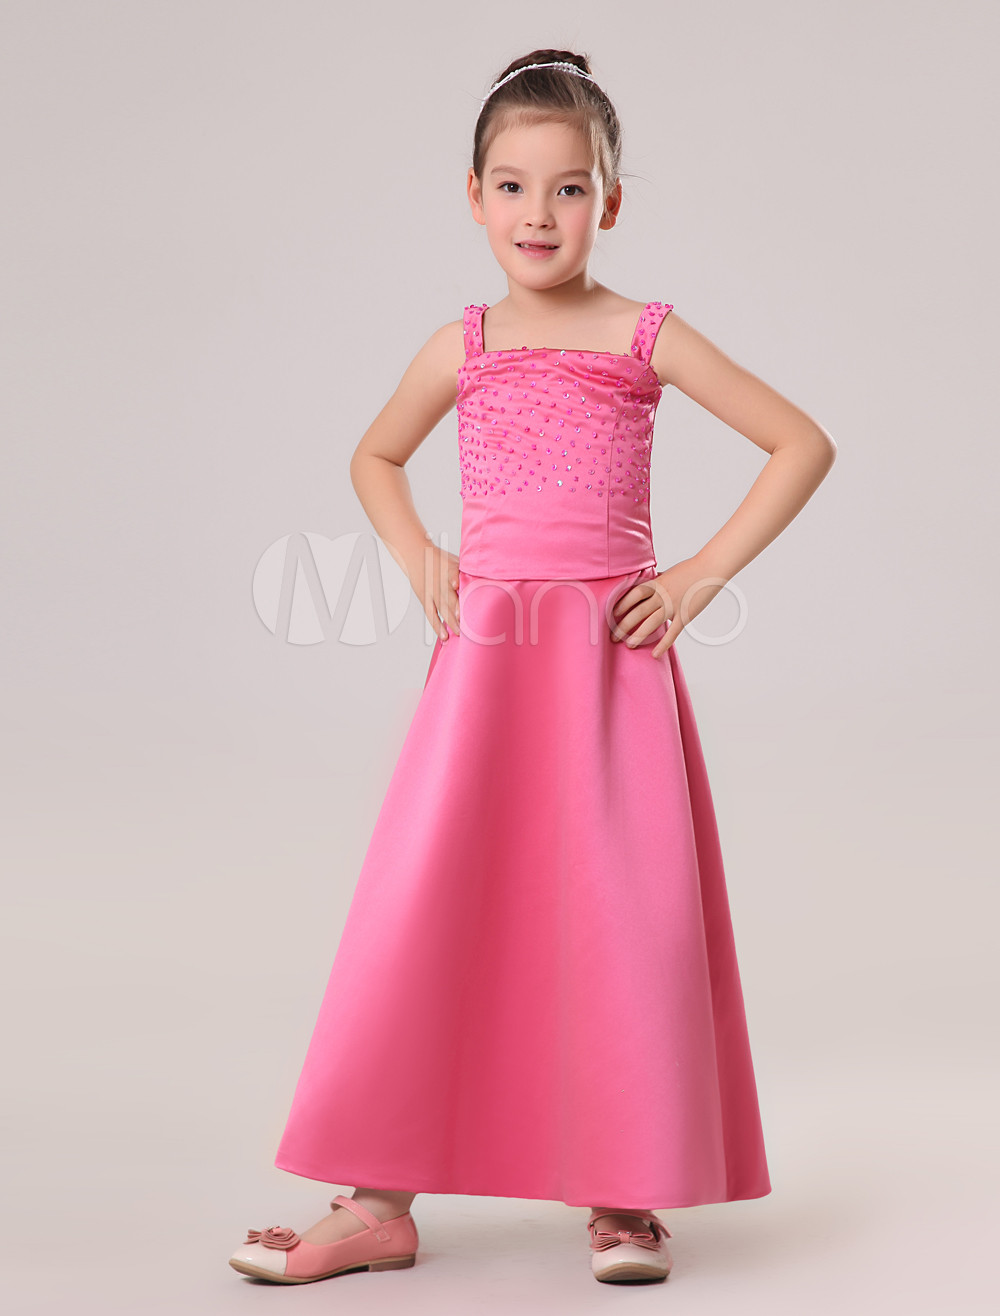 Junior bridesmaid dress patterns image collections braidsmaid junior bridesmaid dress patterns gallery braidsmaid dress junior bridesmaid dress patterns choice image braidsmaid dress junior ombrellifo Image collections